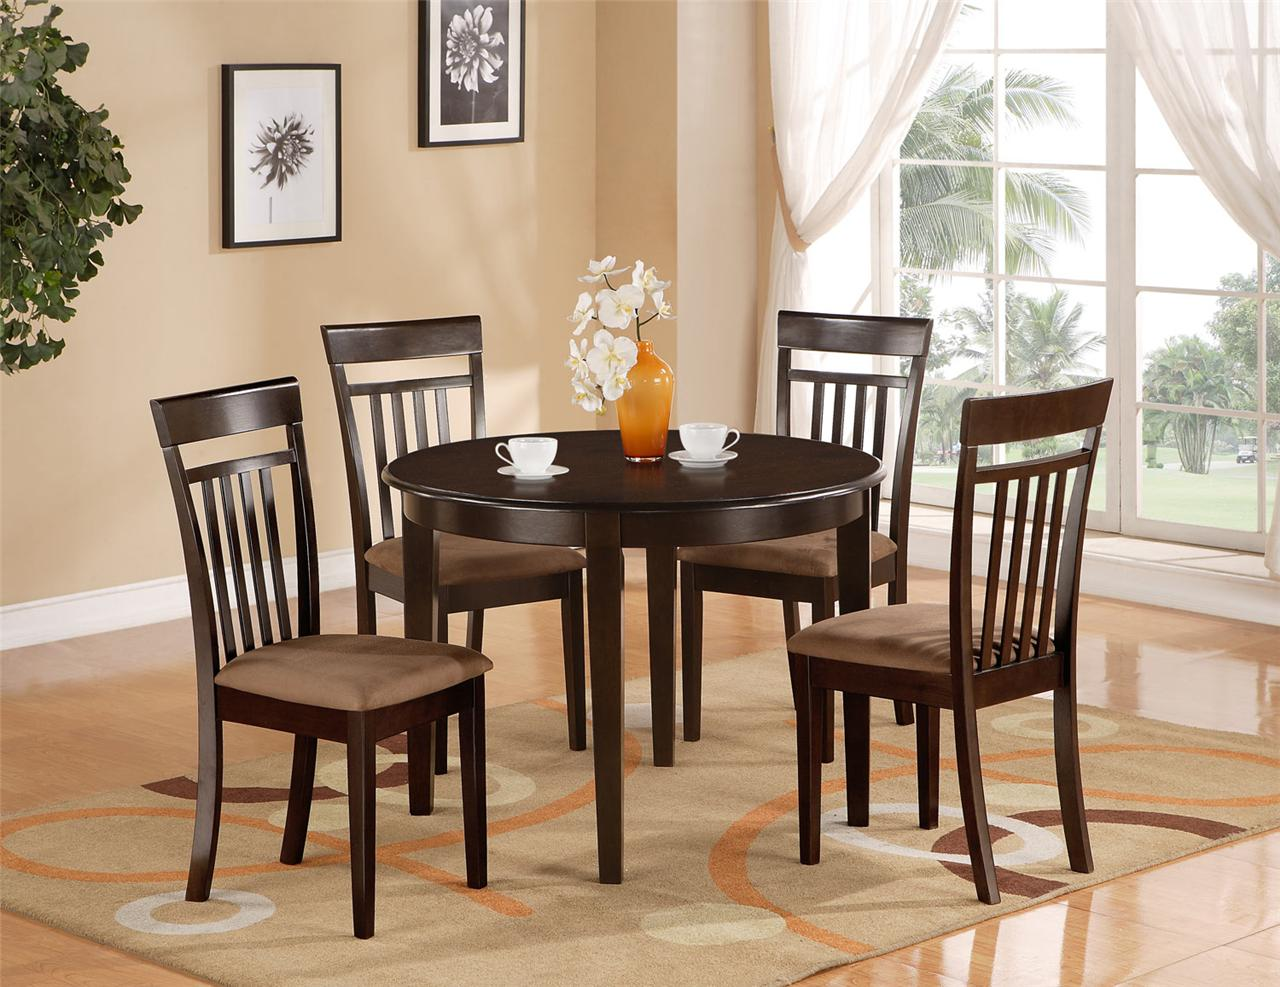 5 pc round kitchen dinette table 4 chairs cappuccino ebay for 4 kitchen table chairs